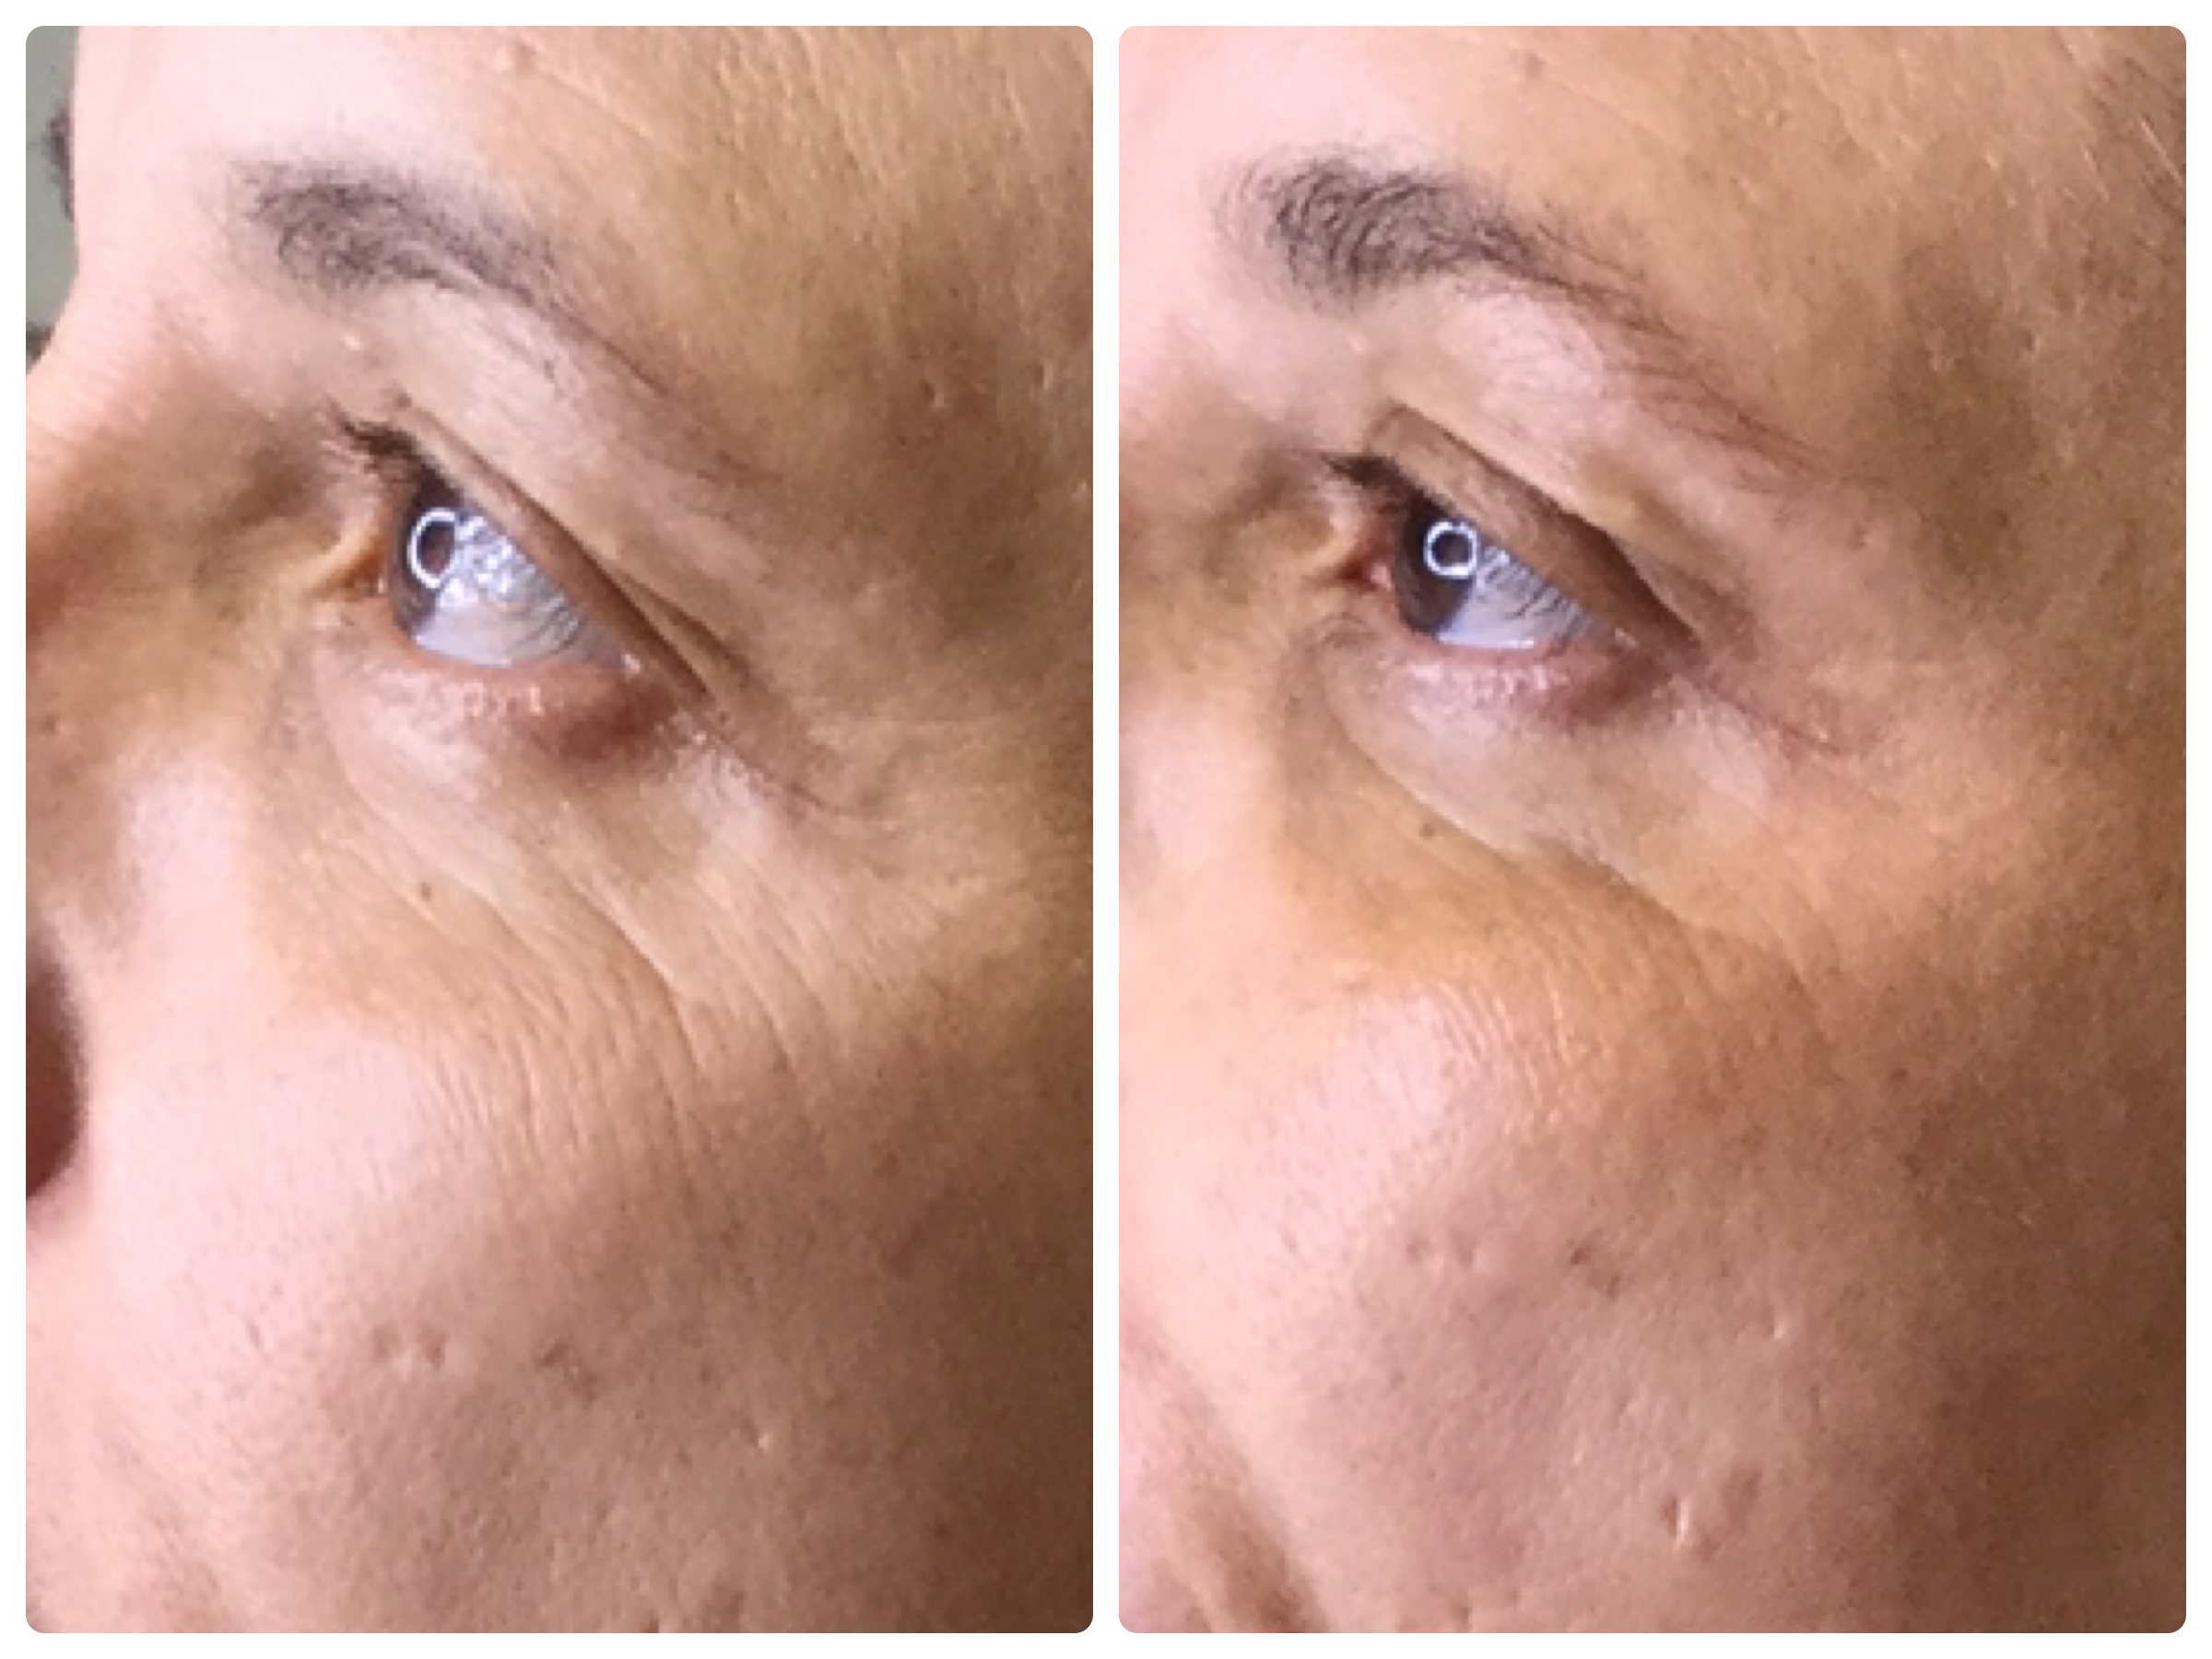 cryofacial after only ONE treatment!